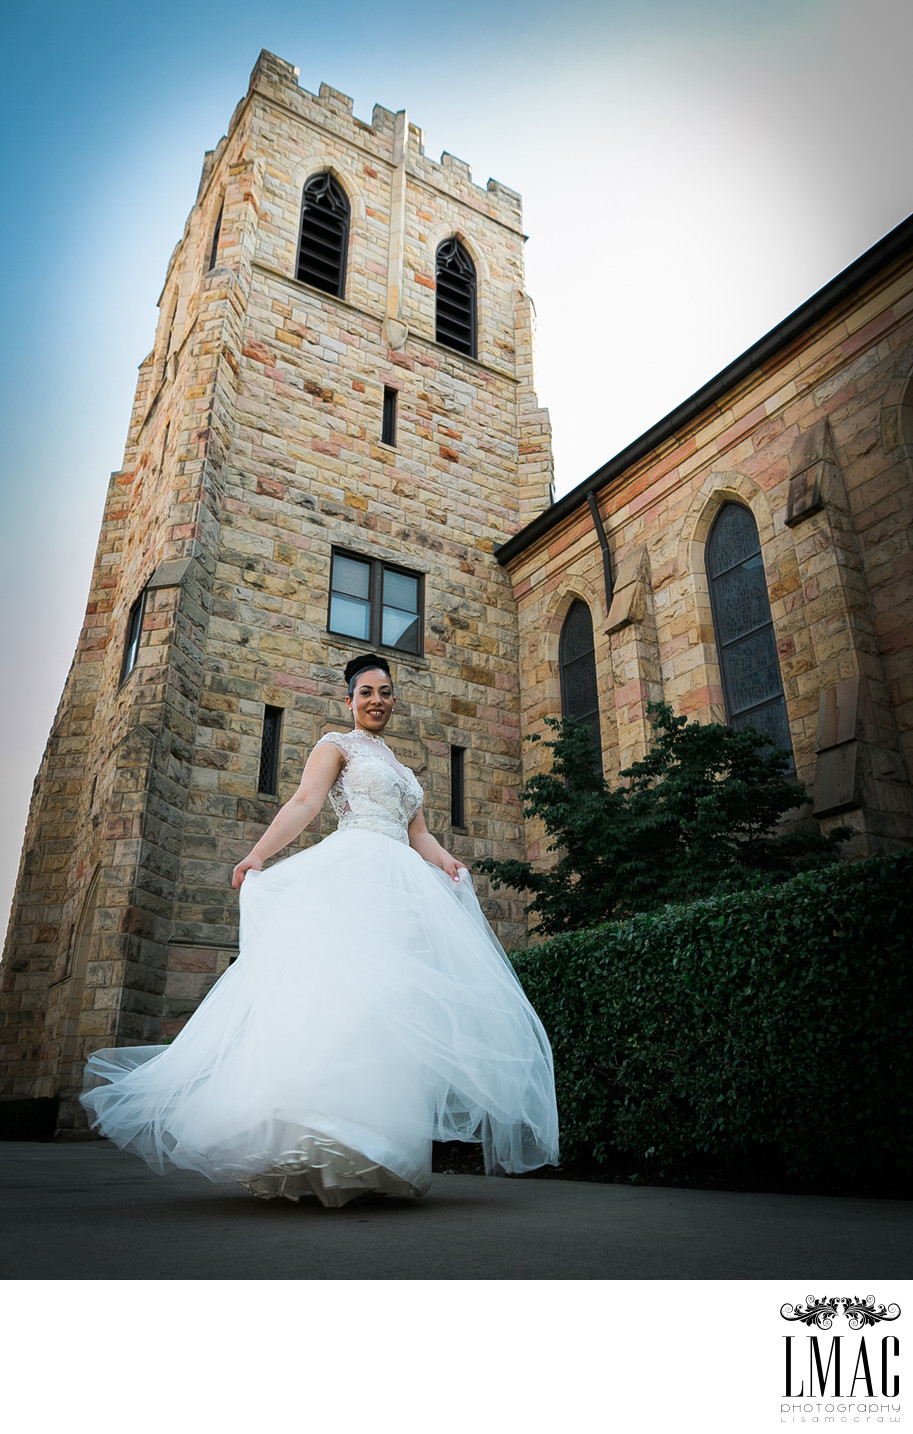 Stunning Bridal Portrait with this Amazing Wedding Gown